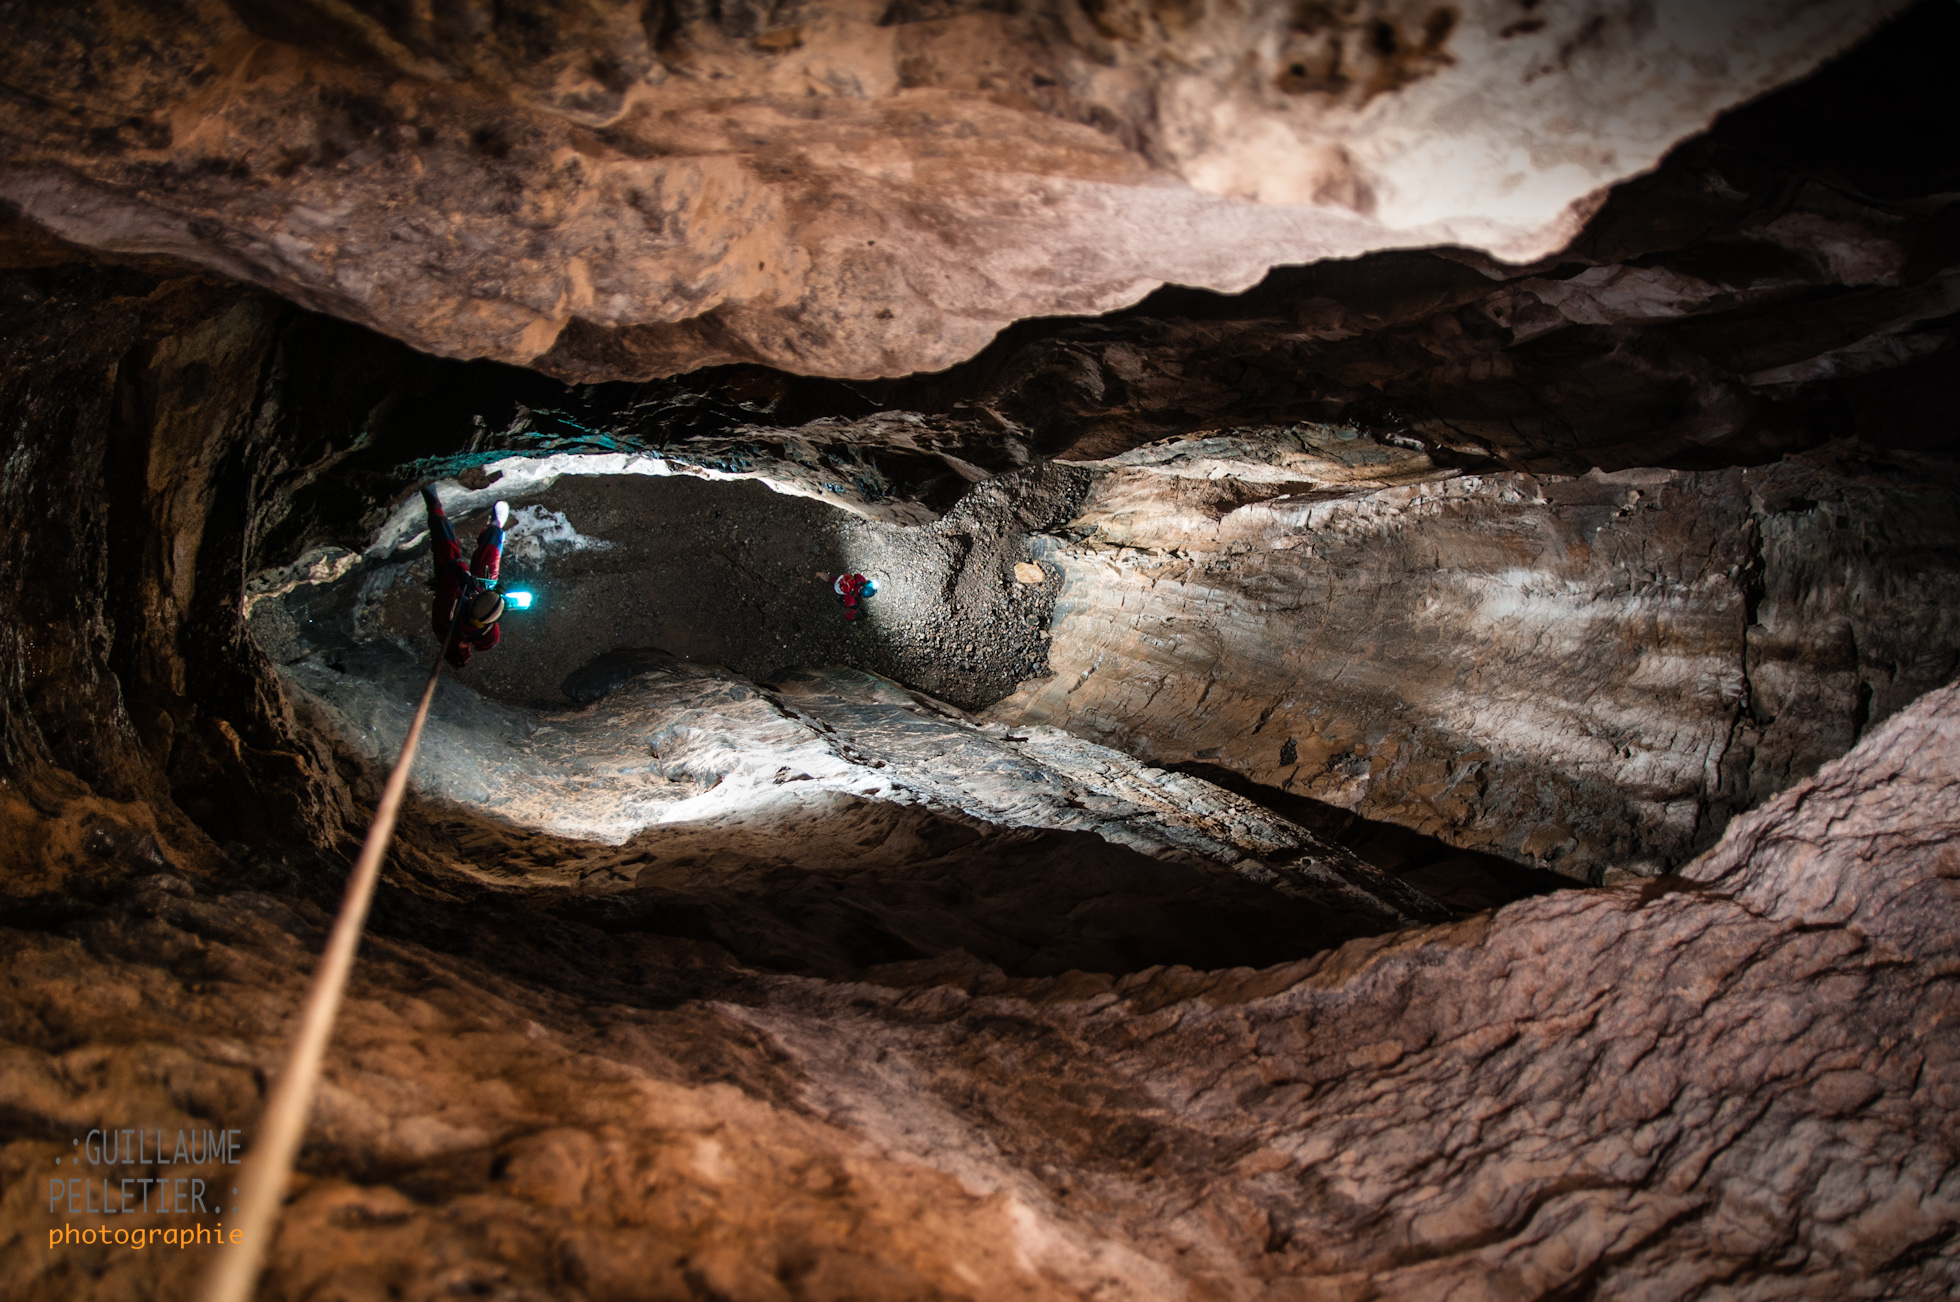 The bottom of So Long And Thanks For All The Cave! pitch. Photo Guillaume Pelletier